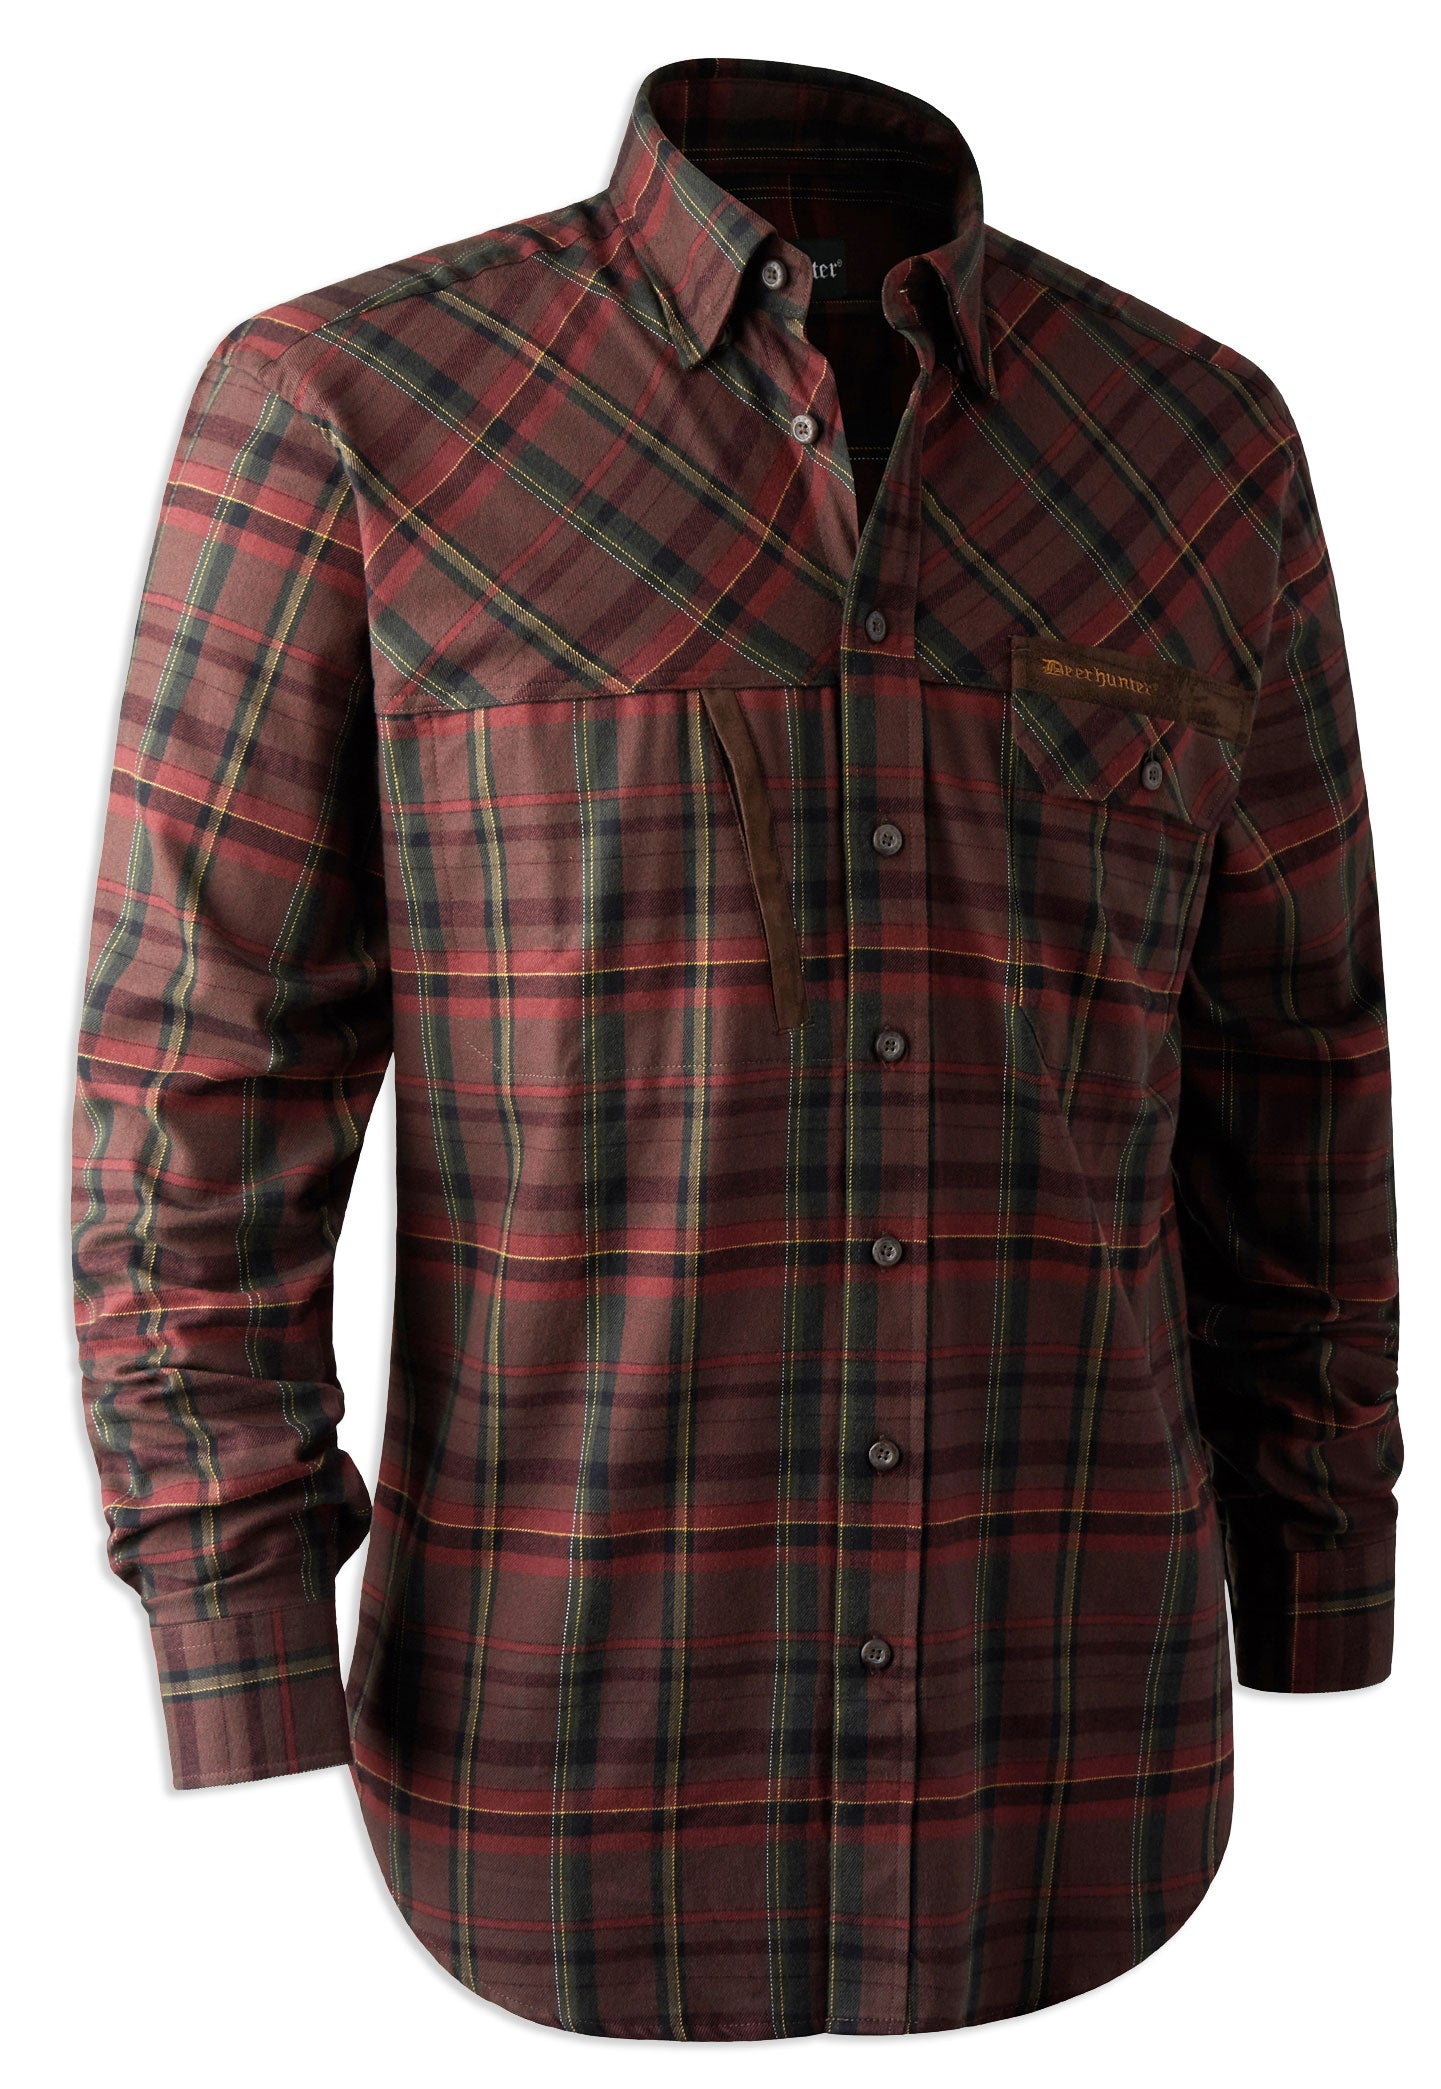 e5e5756a80729 Deerhunter Rhett Check Hunting Shirt – Hollands Country Clothing